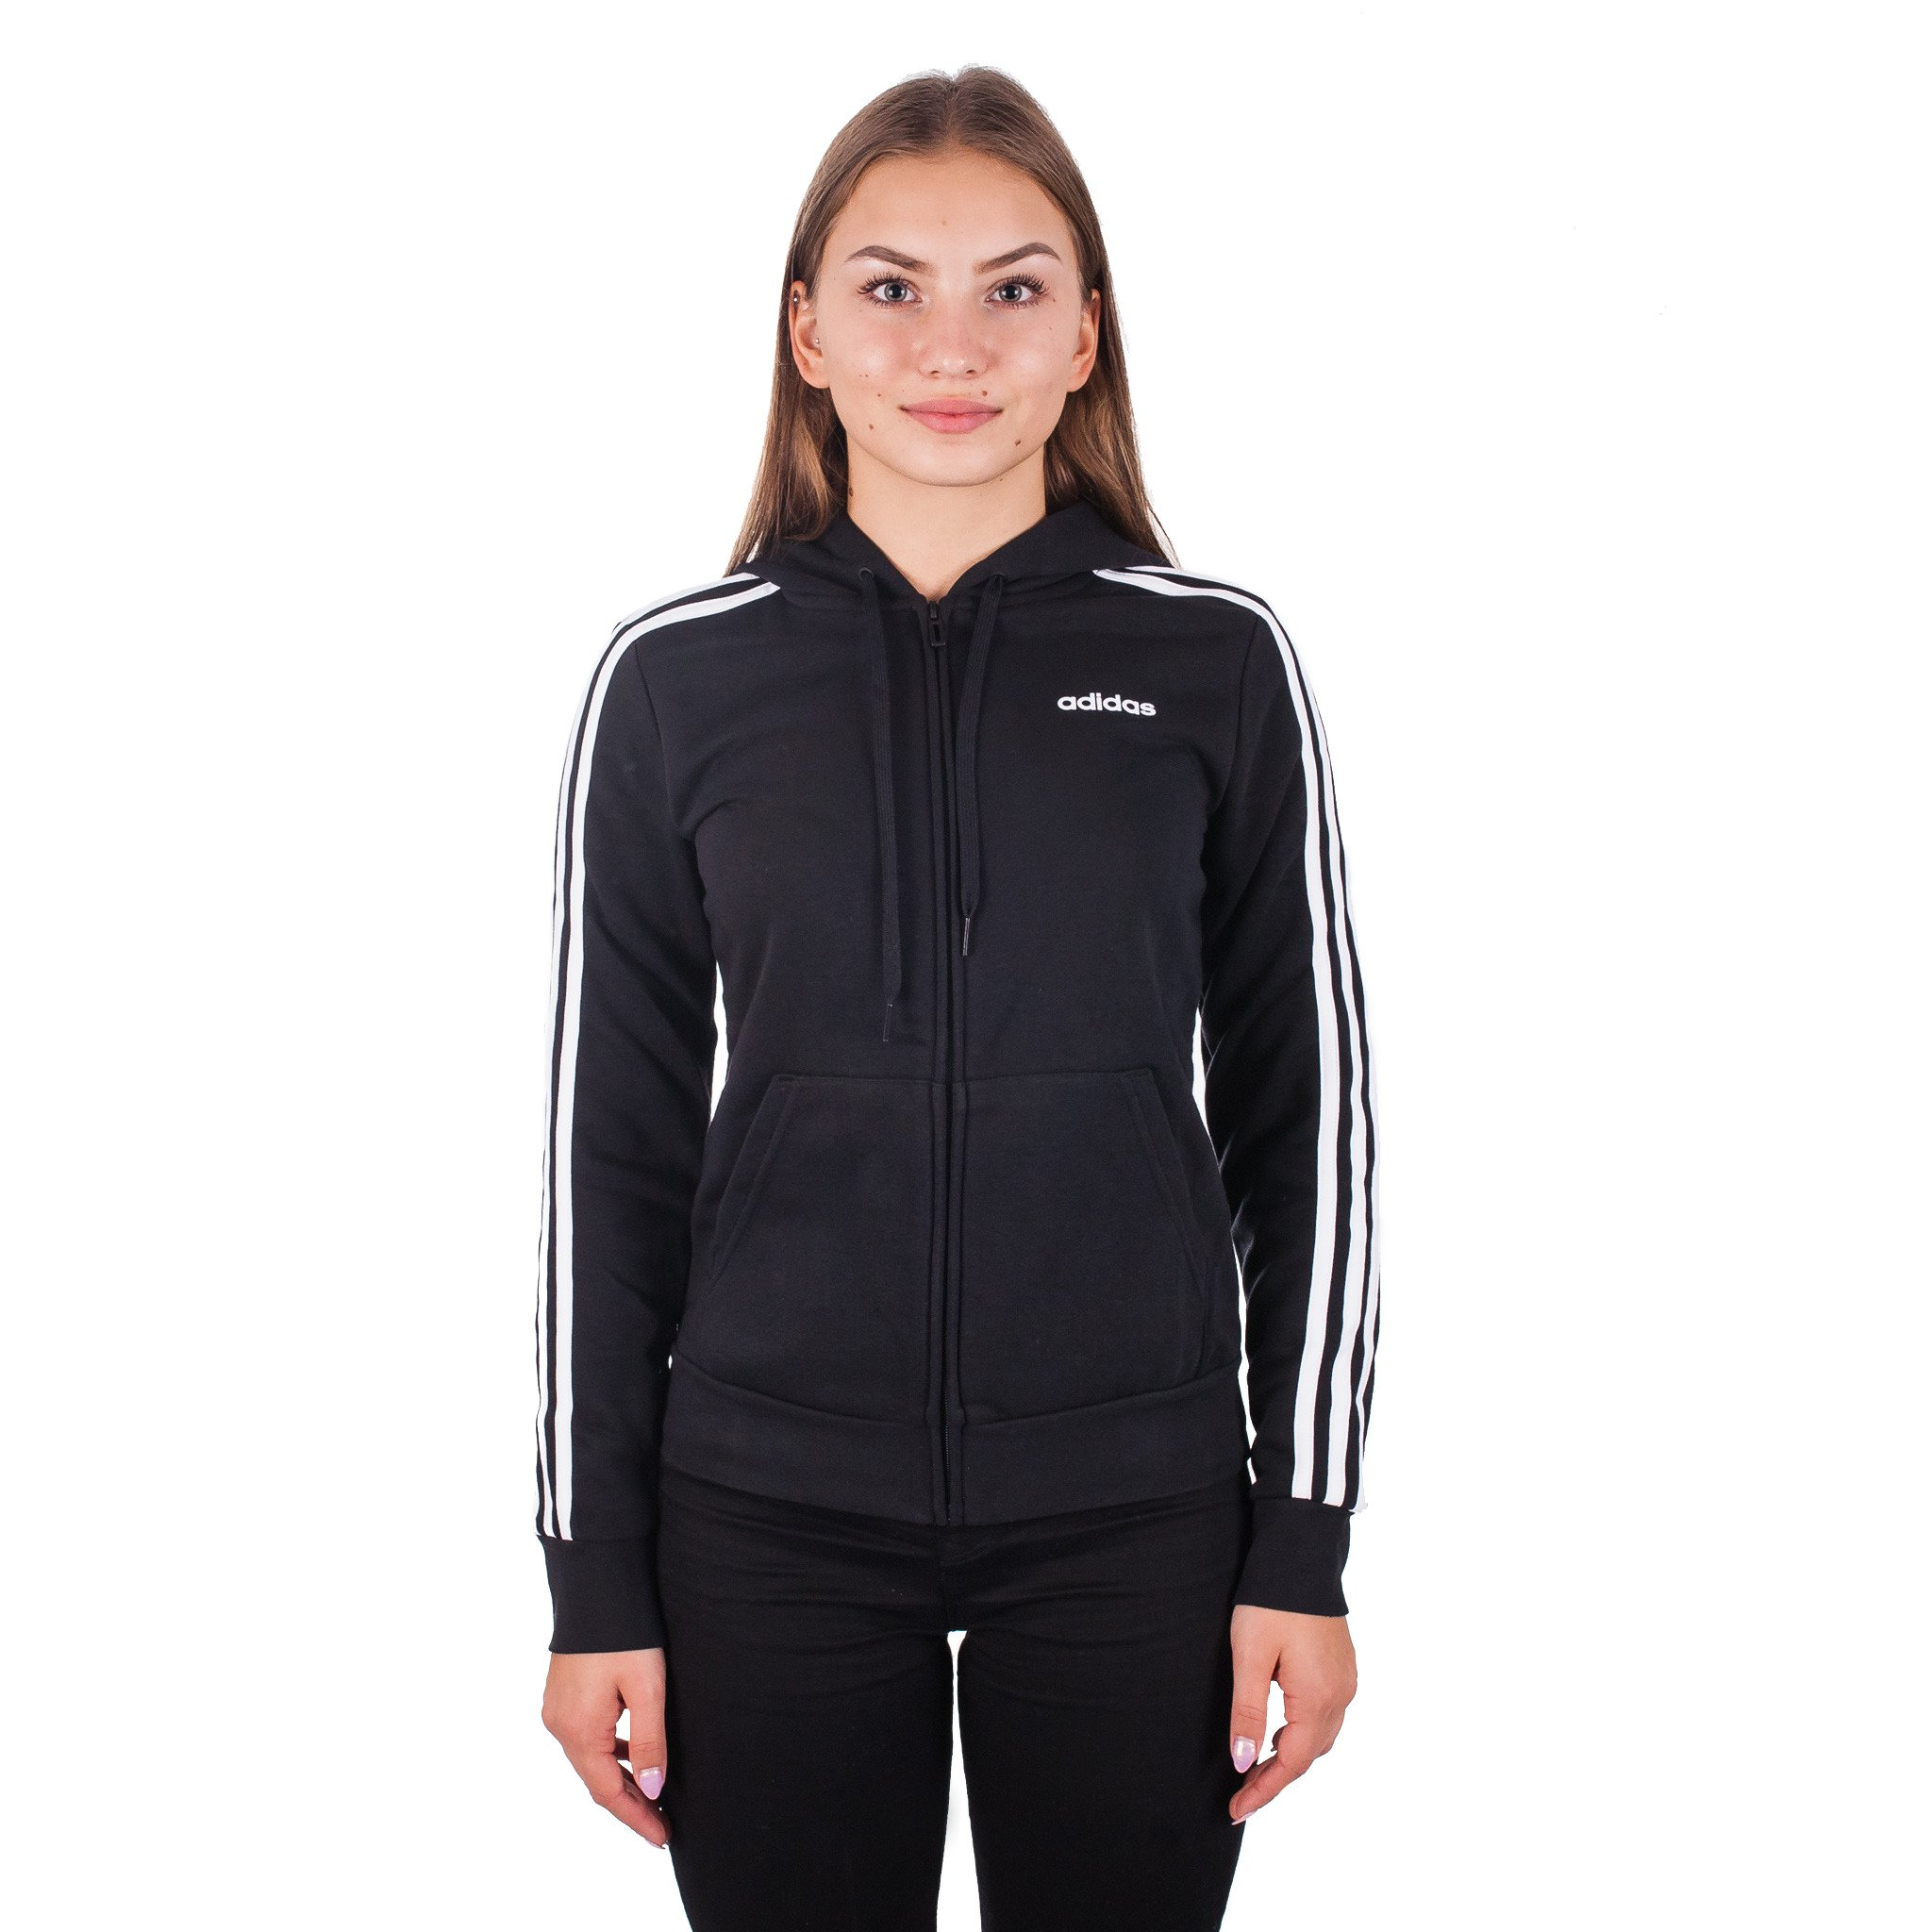 Bluza damska adidas W Essentials 3Stripes FZ HD czarna